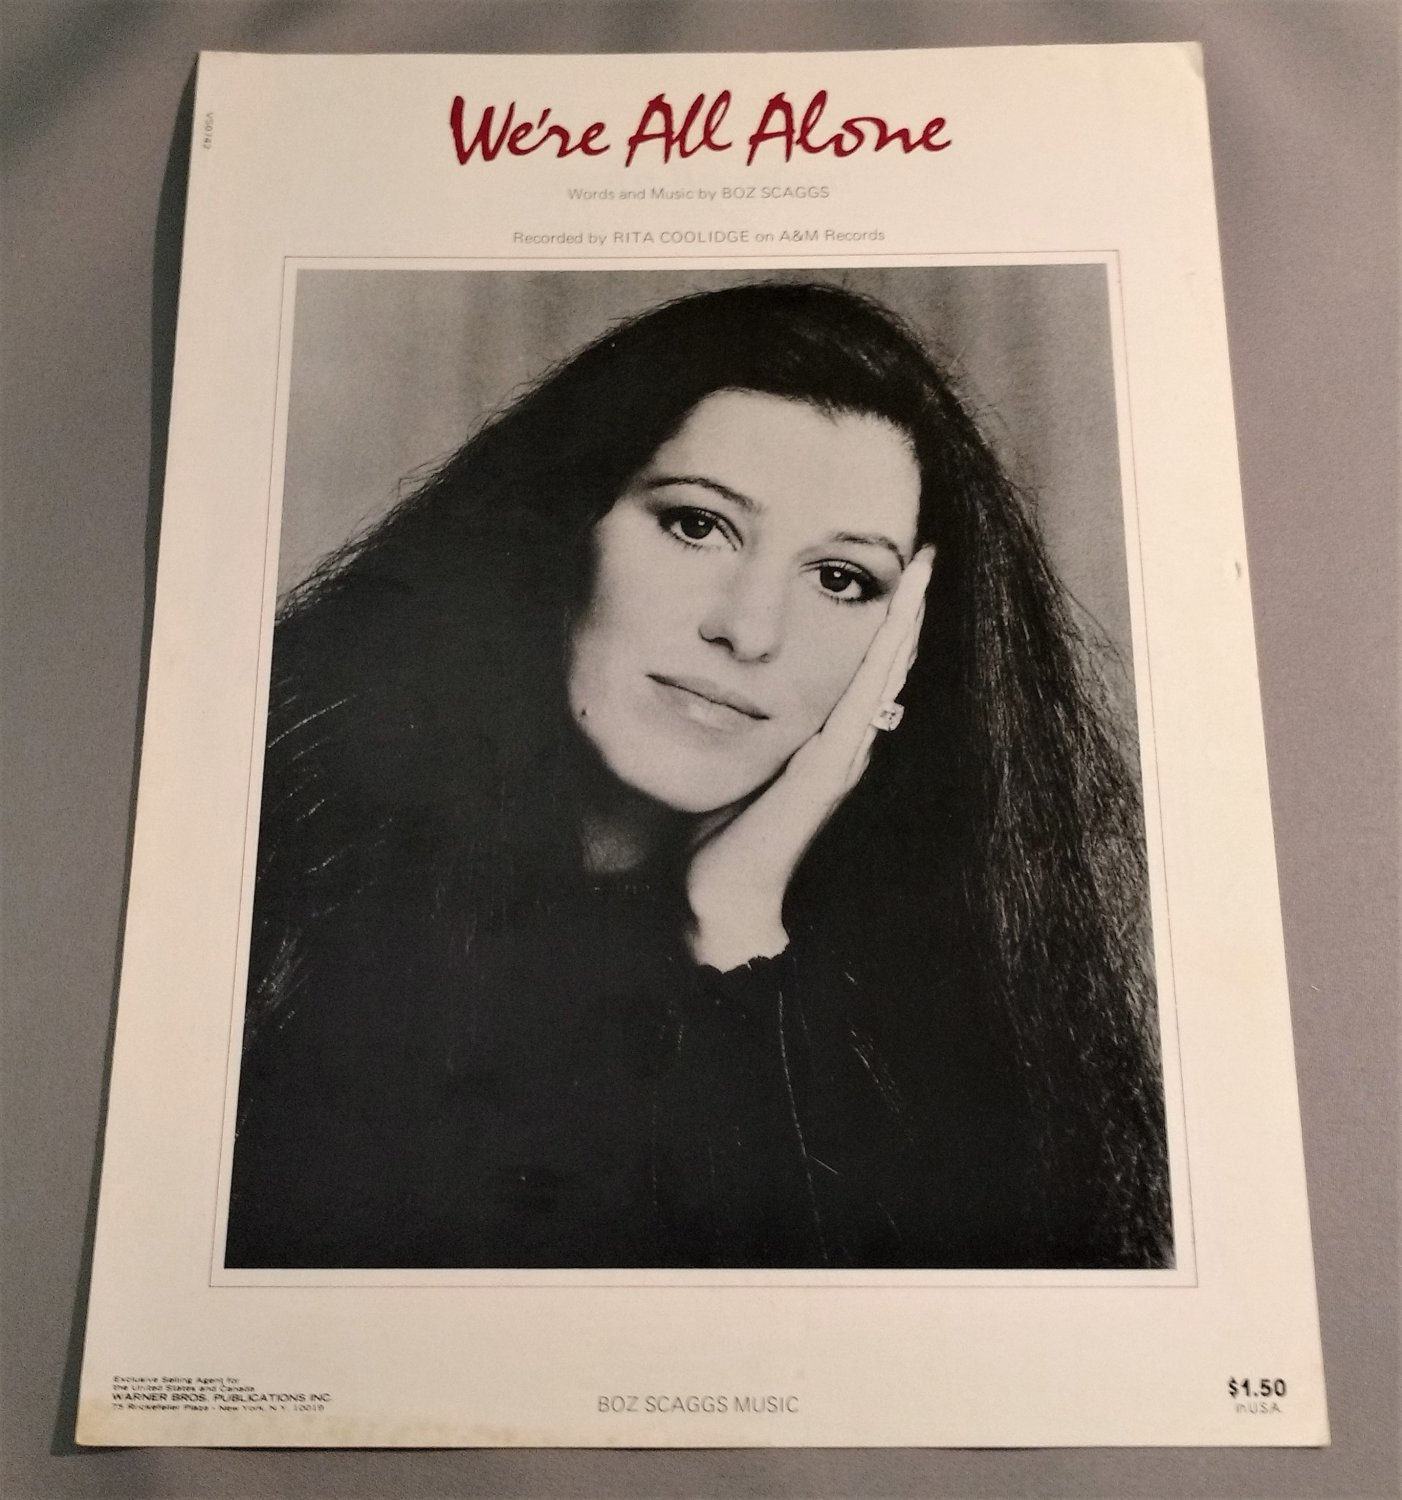 WE'RE ALL ALONE Sheet Music RITA COOLIDGE 1976 Cover Photo